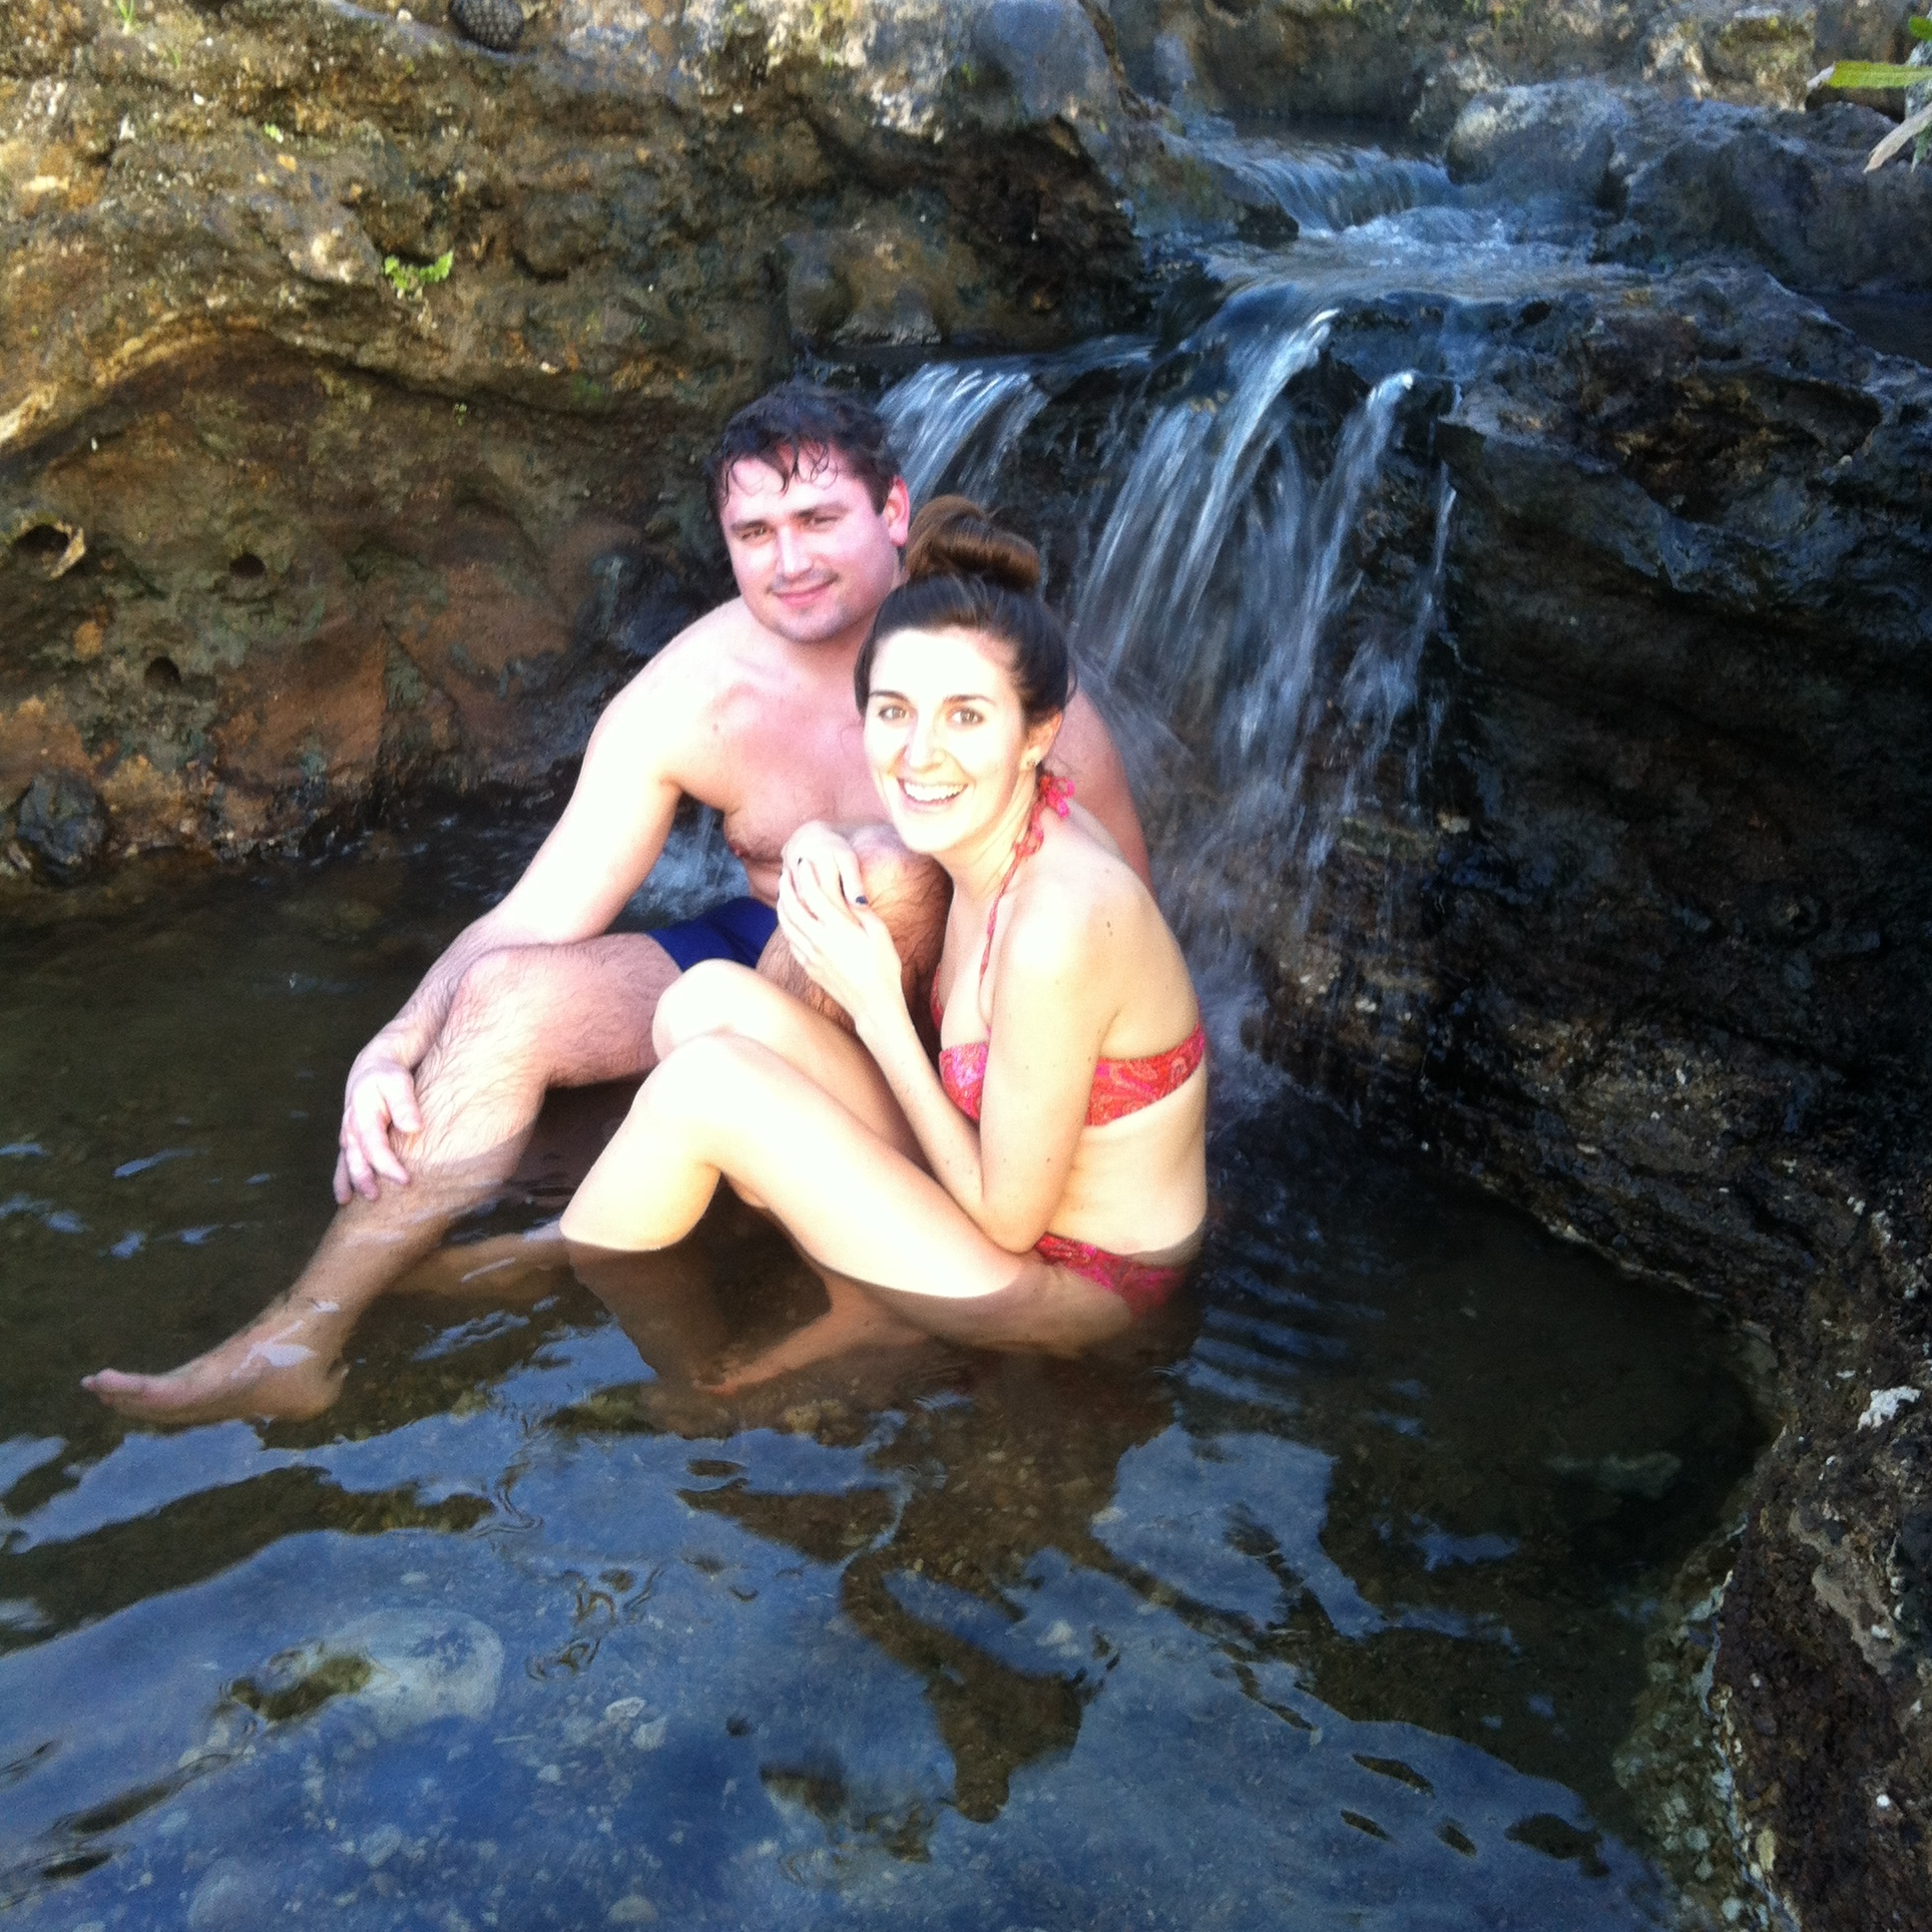 The hot springs were  seriously  hot!! It took me about 10 minutes just to ease my way in.